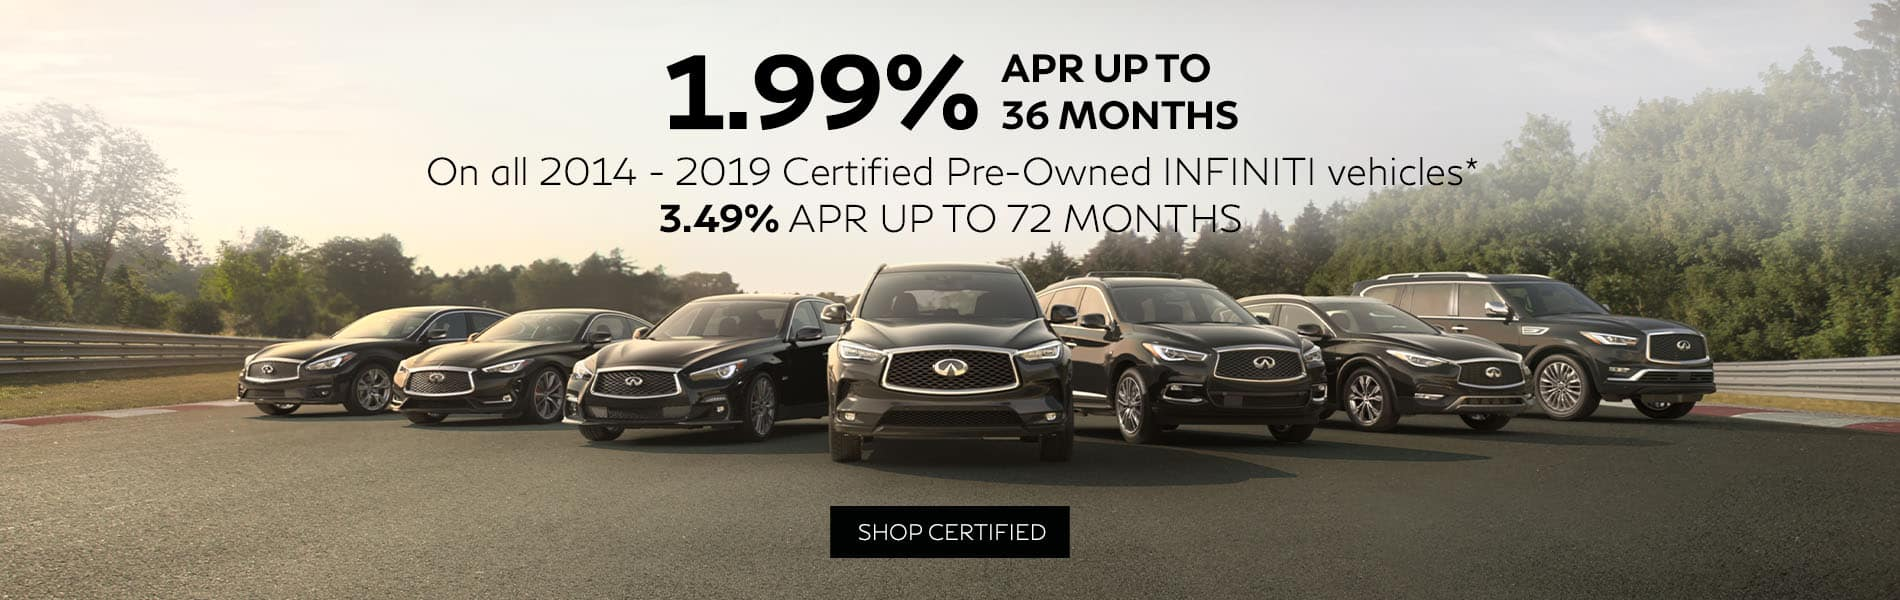 Right now get 1.99% APR up to 36 months or 3.49% APR up to 72 months on all 2014 to 2019 INFINITI Certified Pre-Owned vehicles.